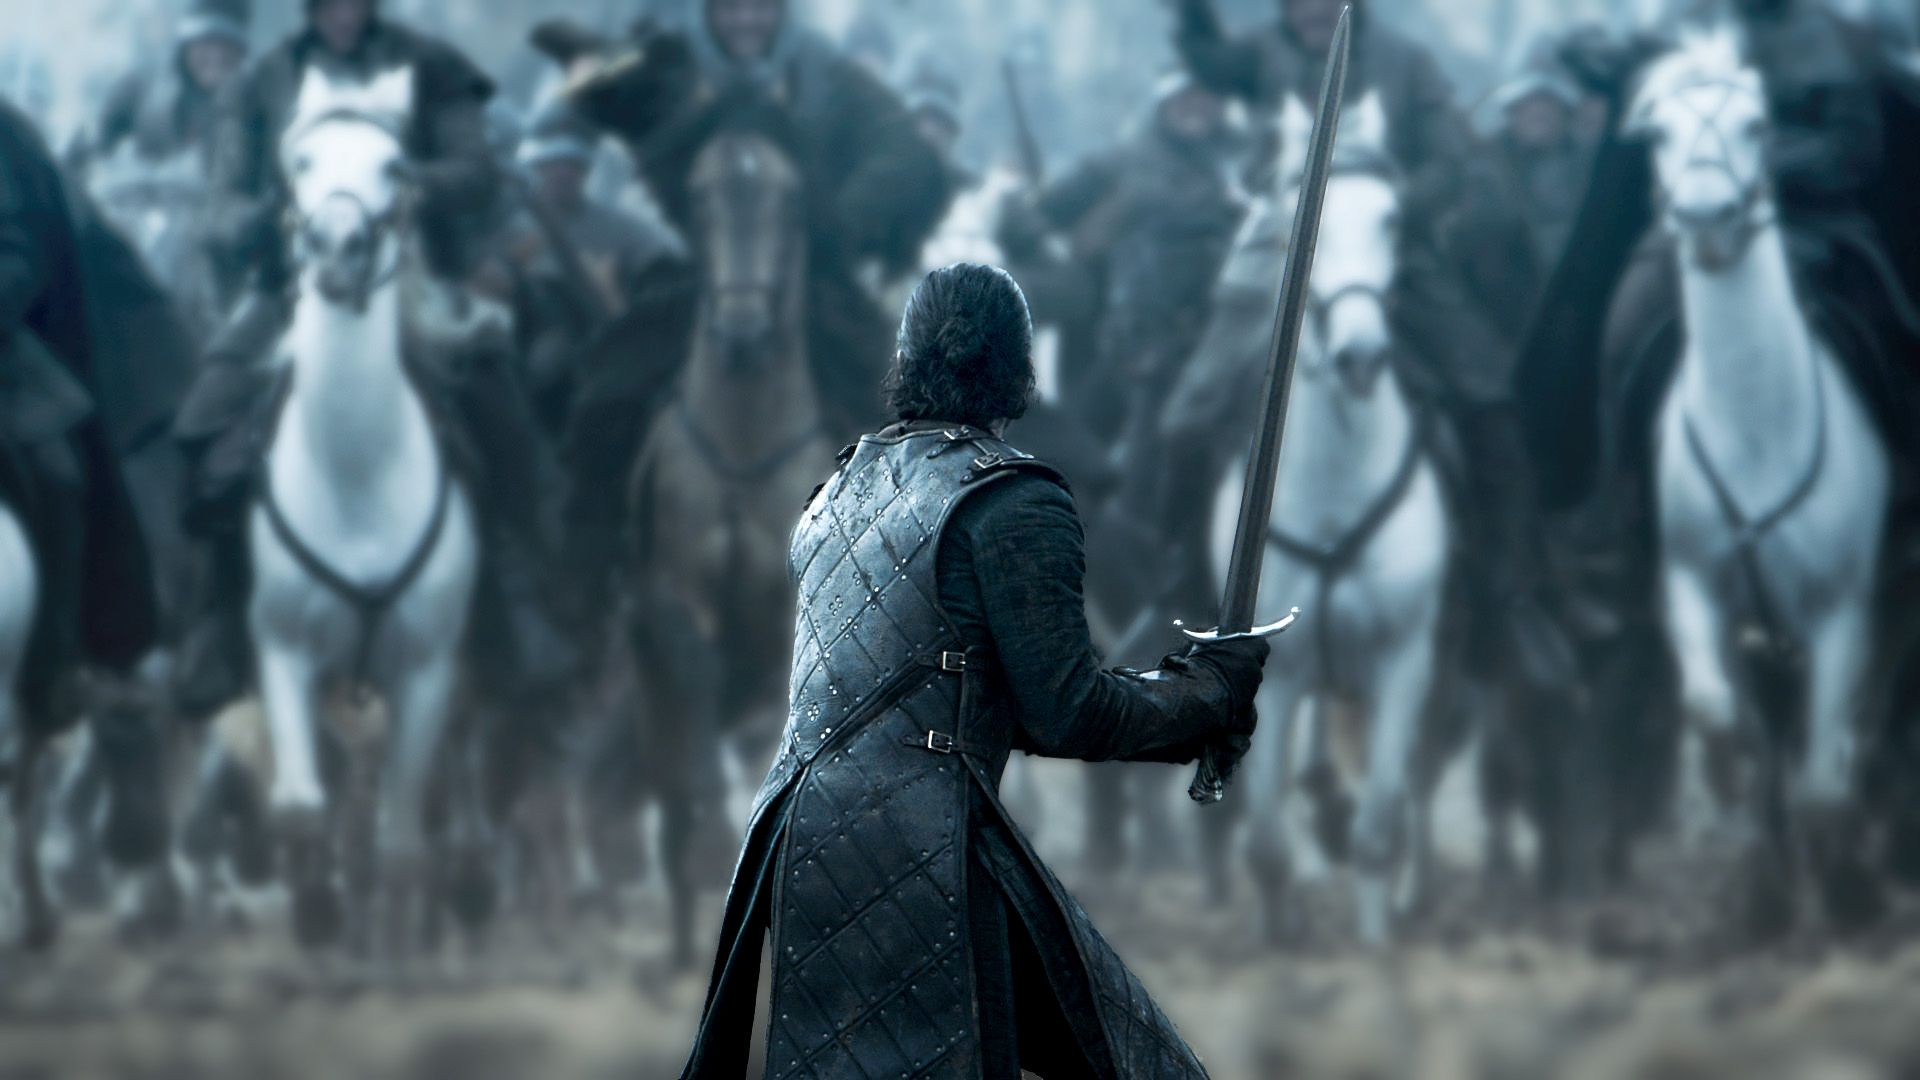 1920x1080 Jon Snow Screen Shot From S06e09 Game Of Thrones Enhanced Image R Wallpapers Snow Wallpaper Hd Game Of Thrones Art Android Wallpaper